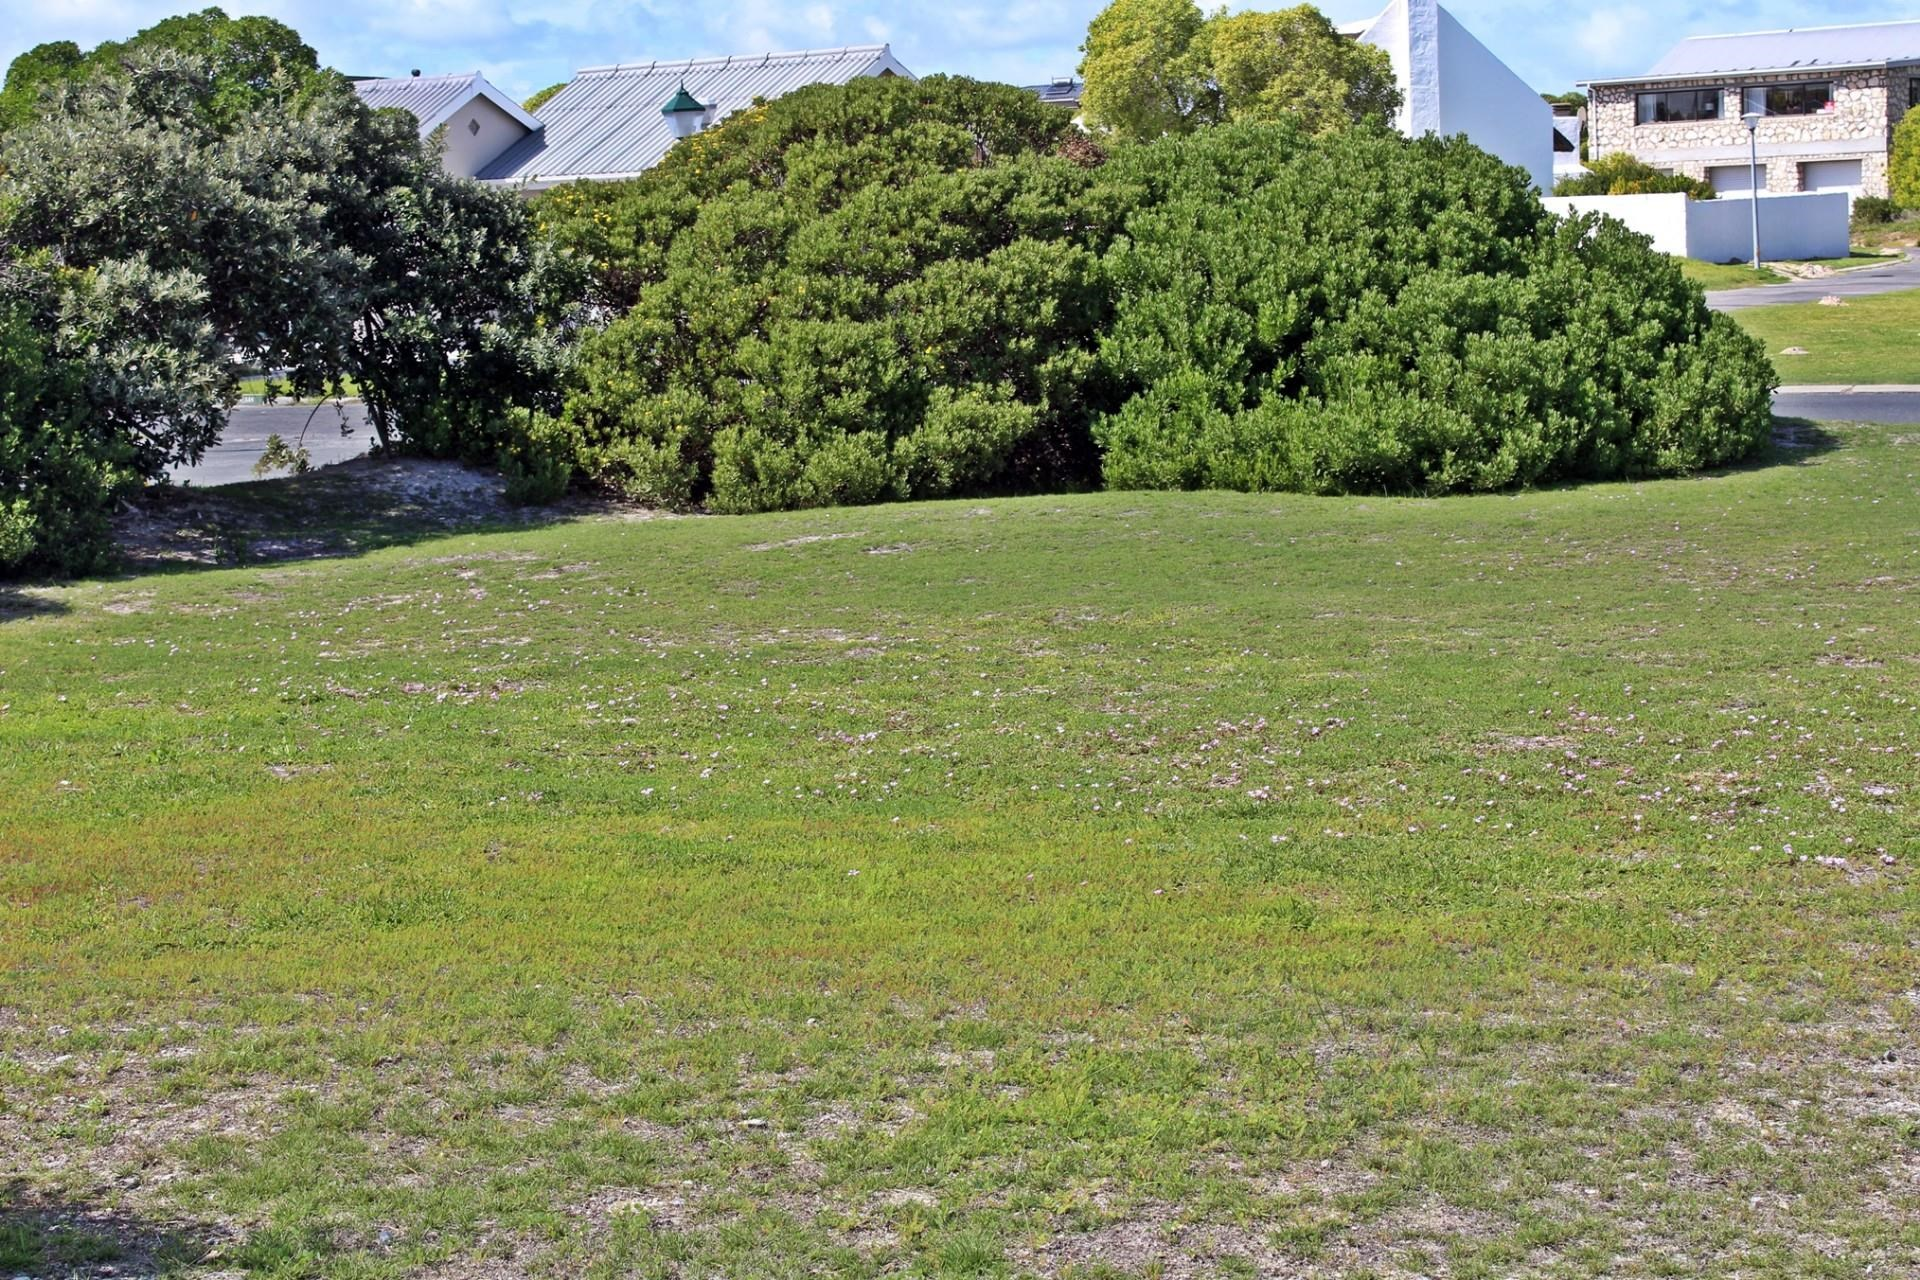 Vacant Land for Sale in Struisbaai